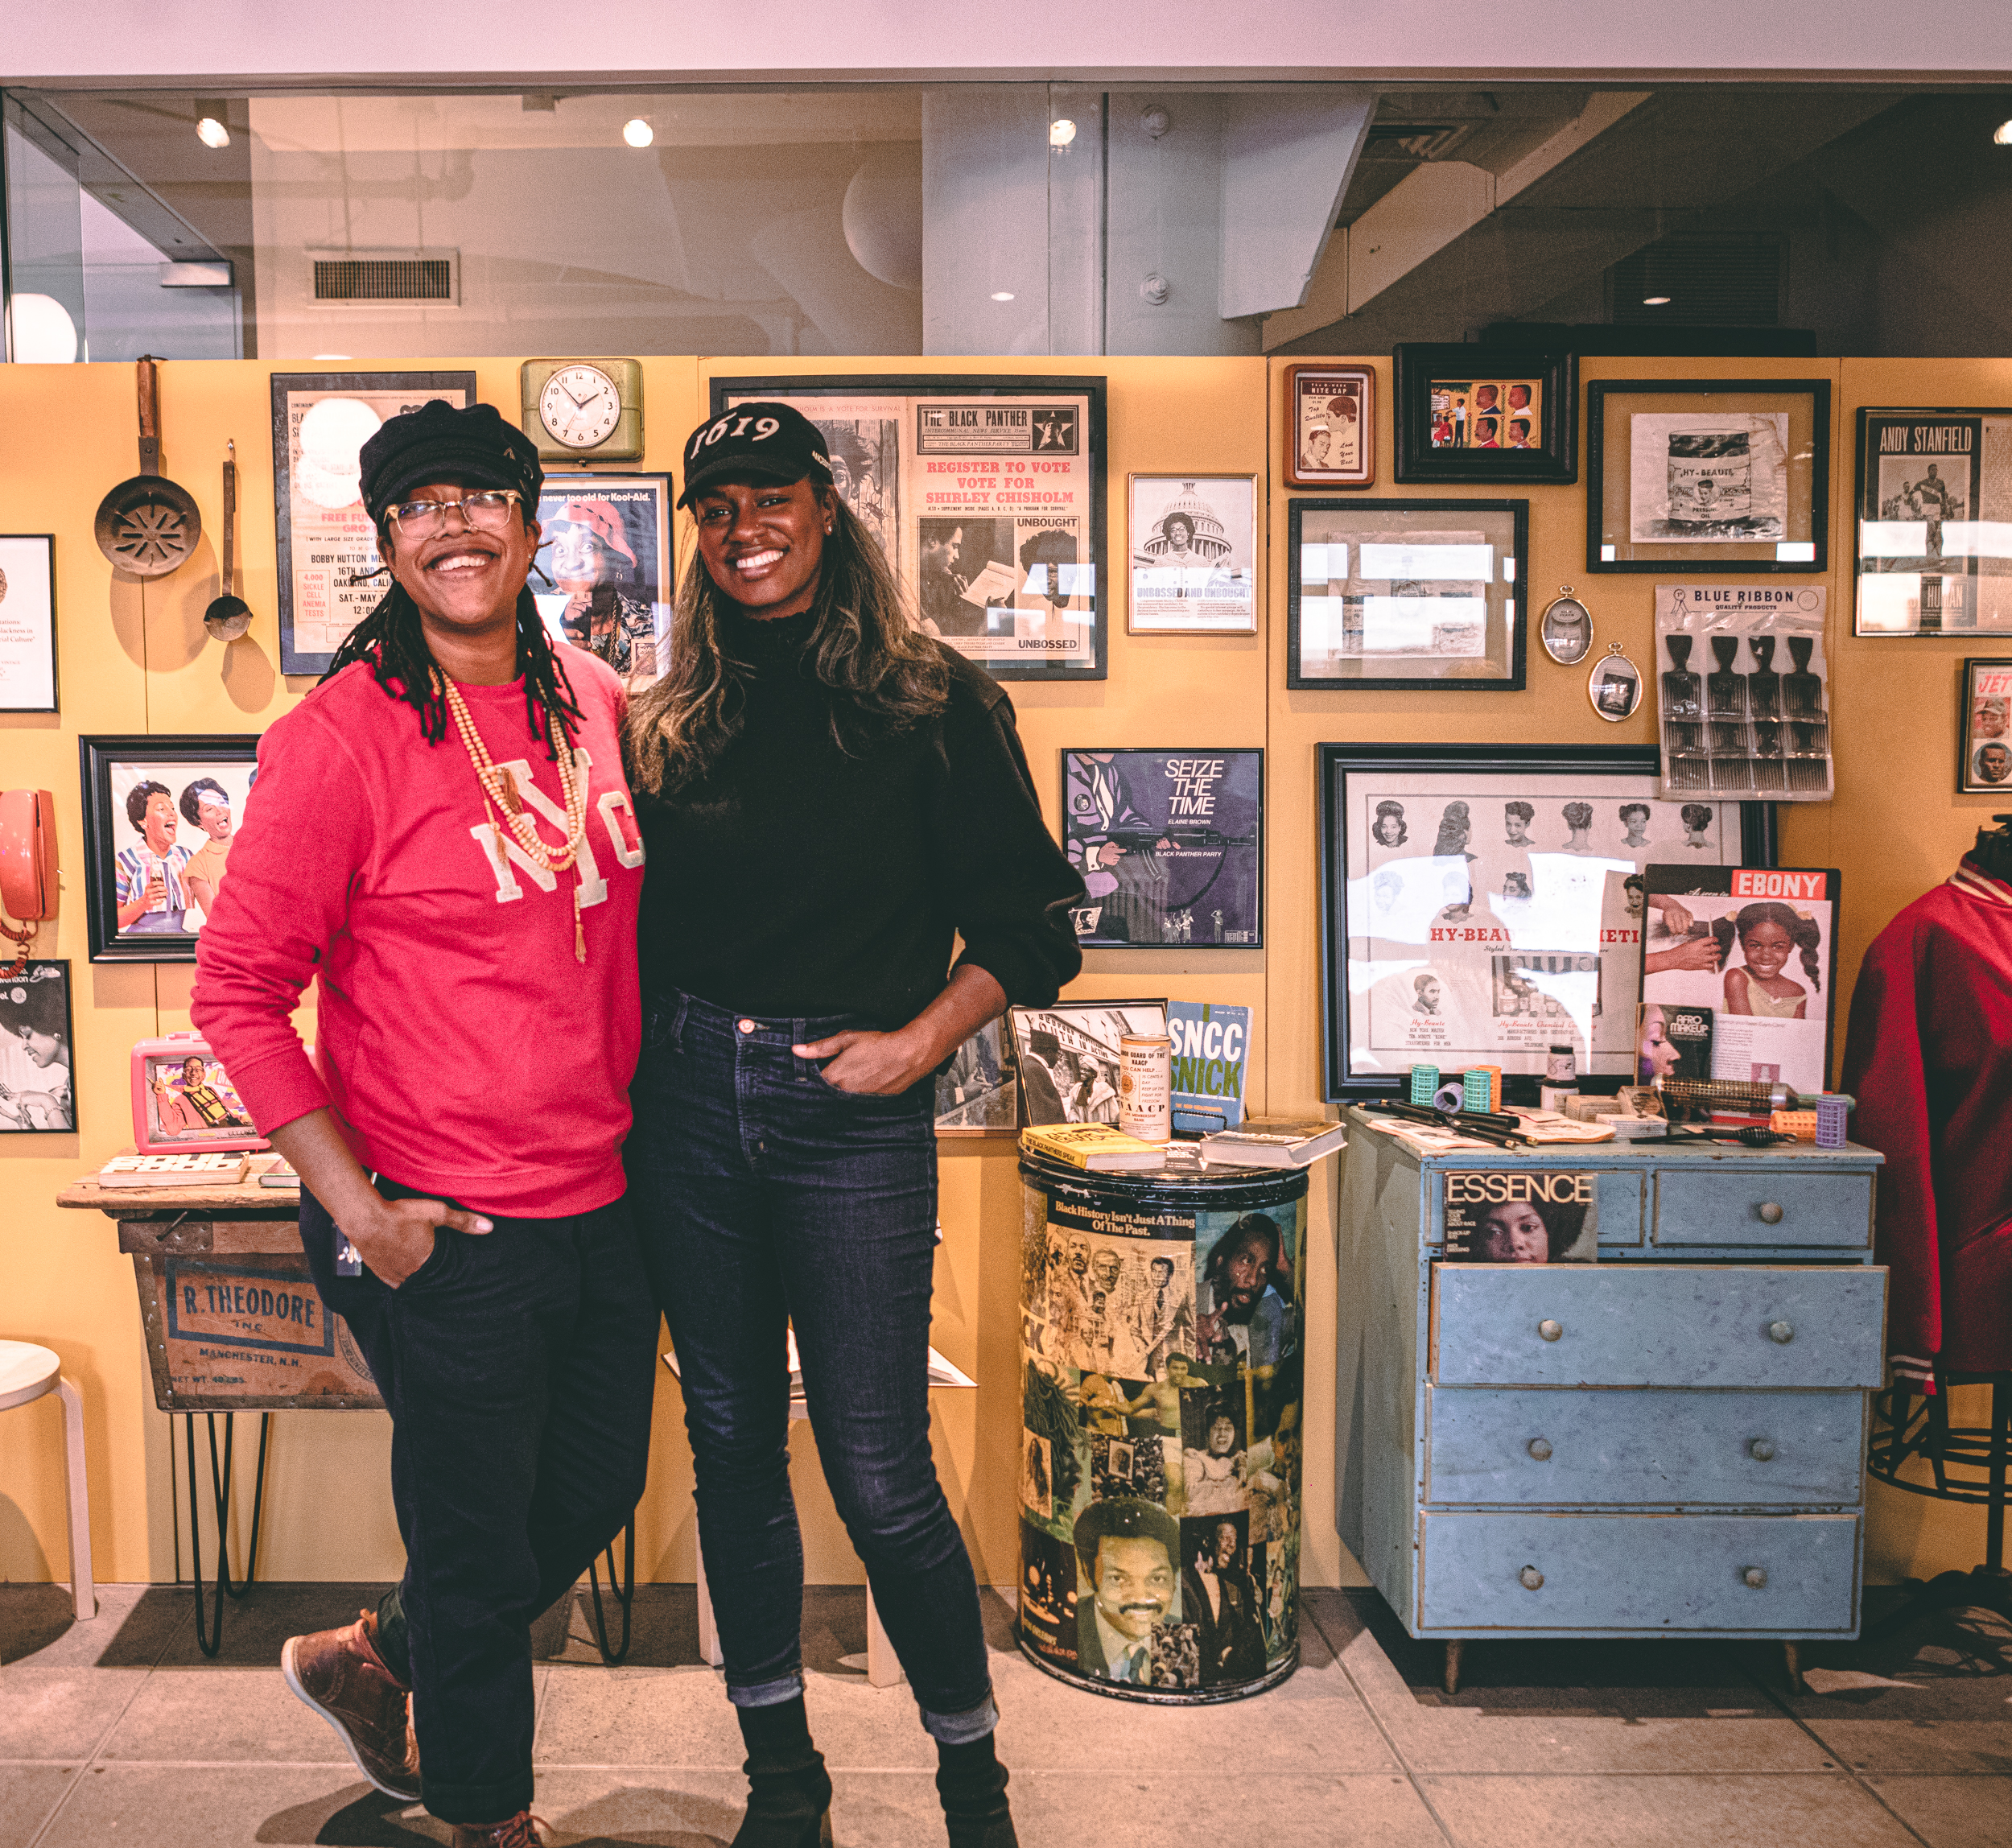 BLK MKT Vintage founders, Jannah Handy (left) and Kiyanna Stewart (right) posing in front of an exhibit they curated at NYC ad agency, Wieden + Kennedy in February 2020.